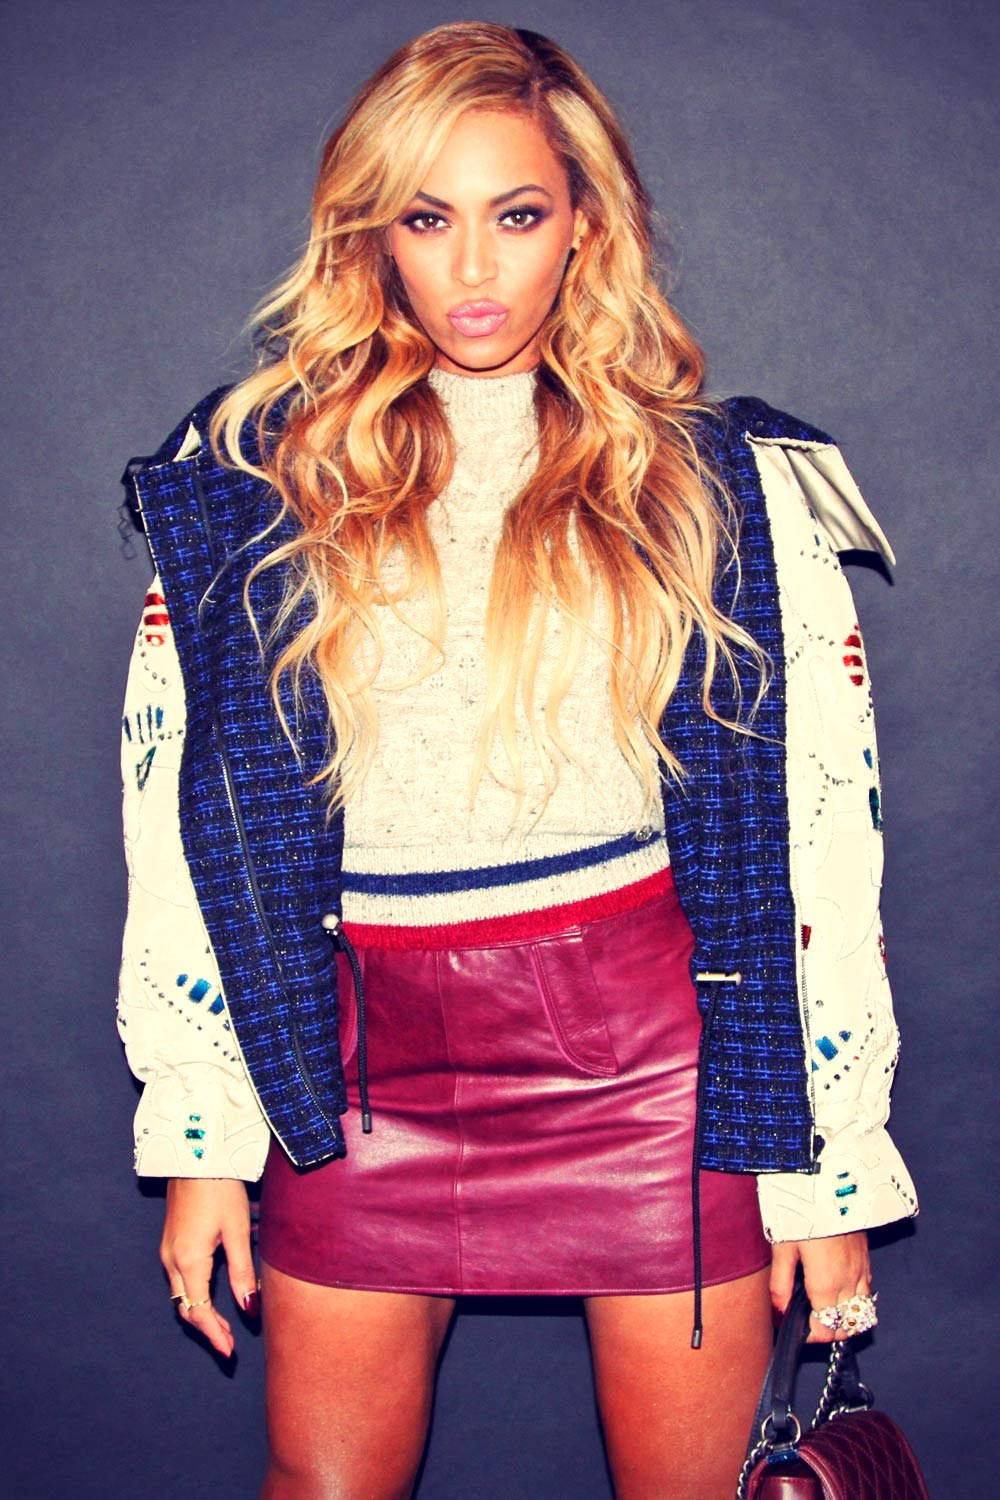 Beyonce at the Chanel Fashion Show in New York City